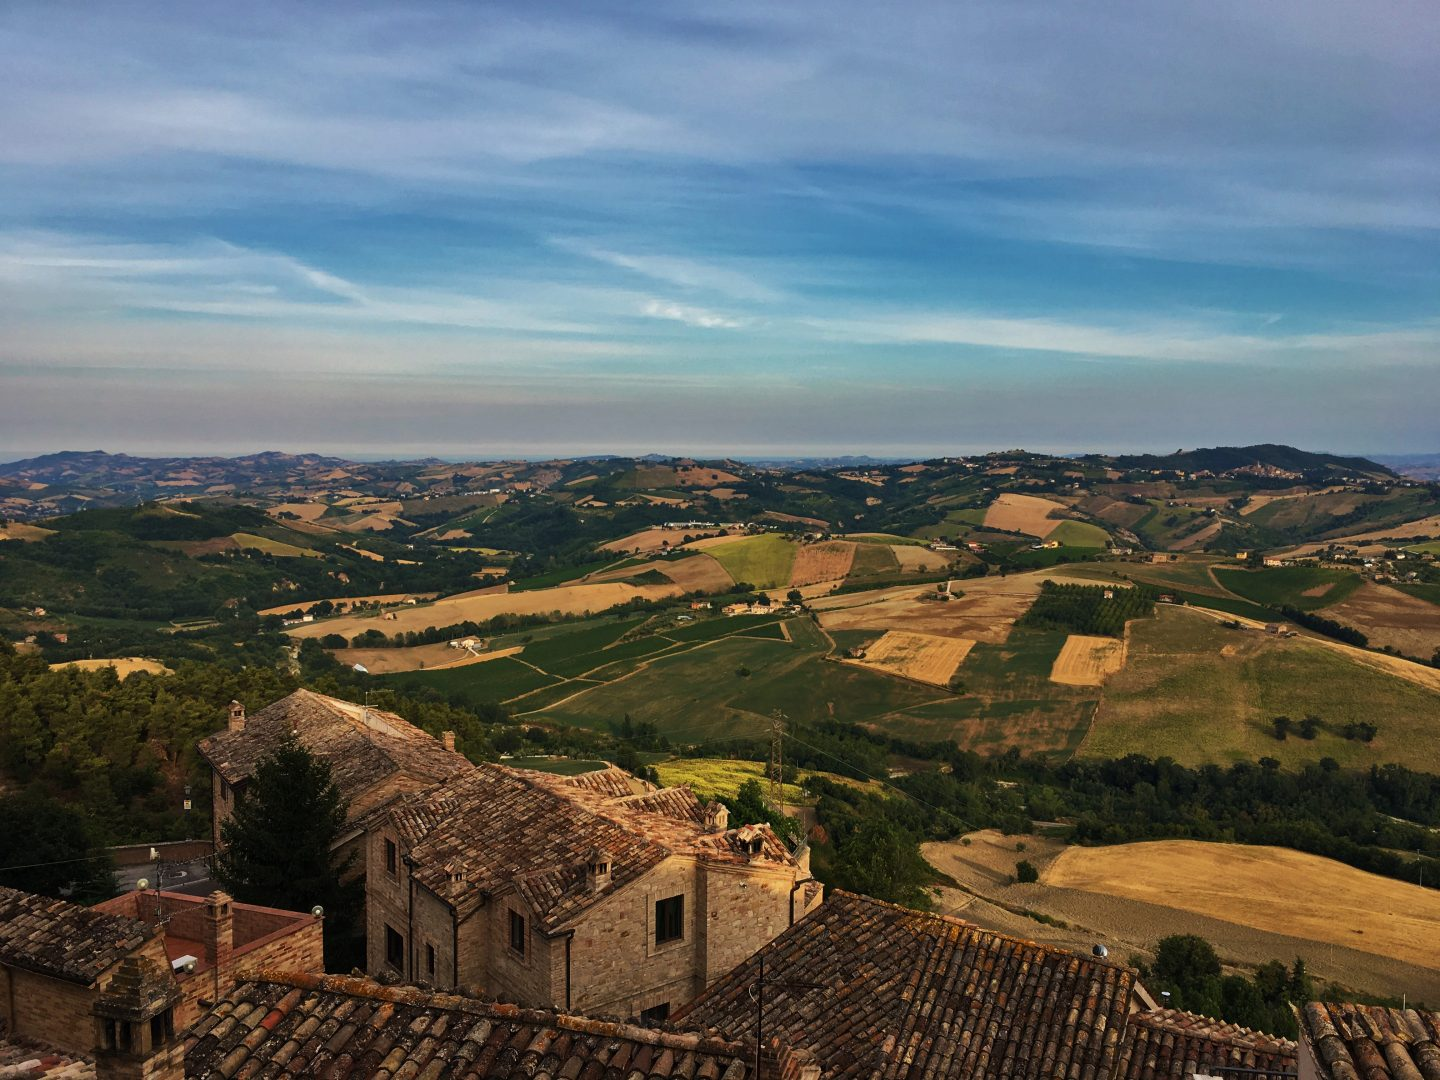 view from Montedinove le marche family holiday to italy, Italy driving holiday